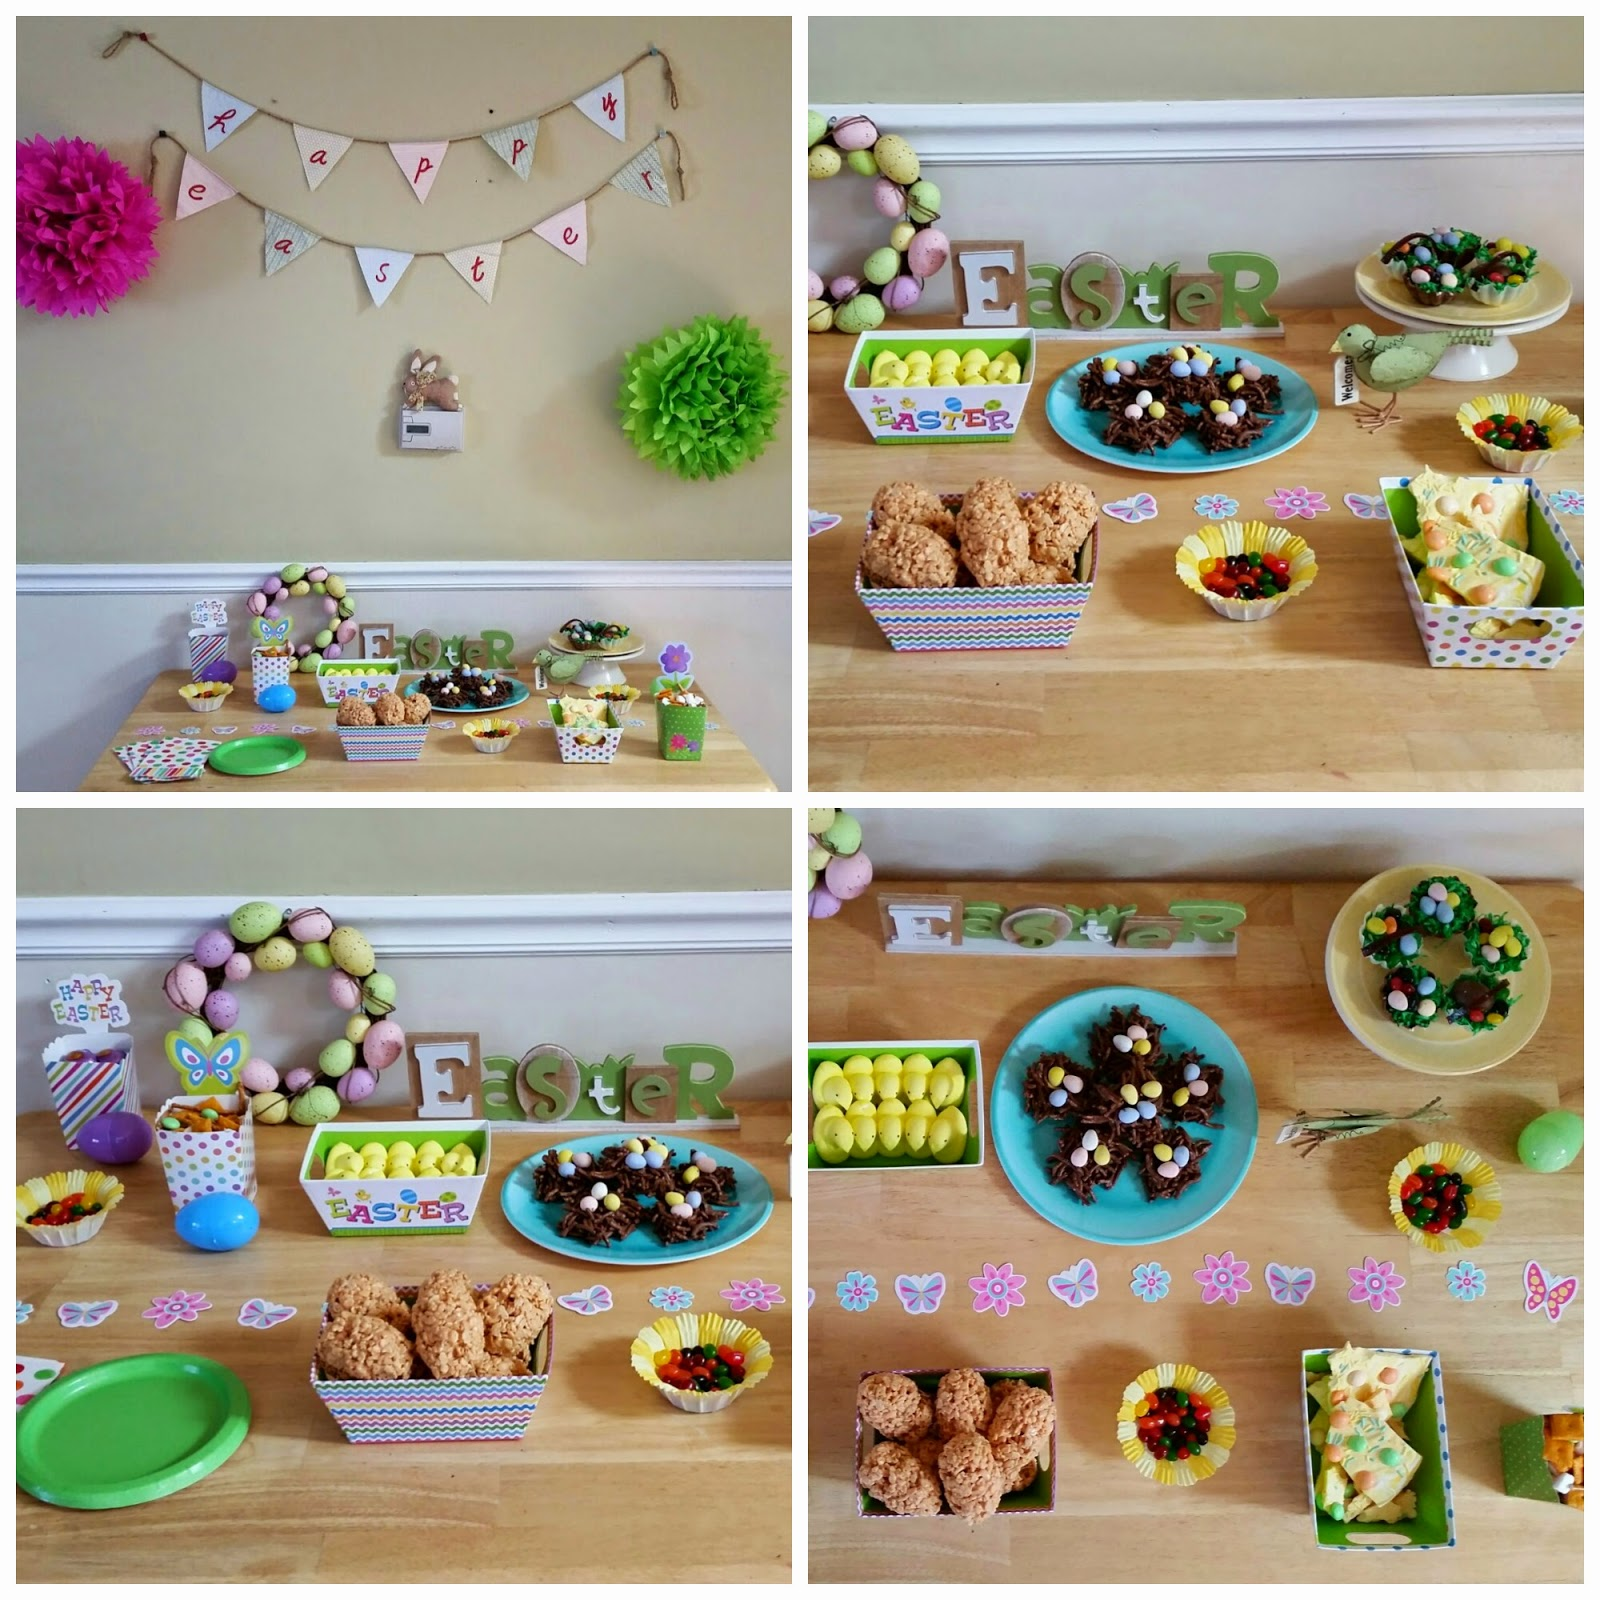 decorations, sweet treats